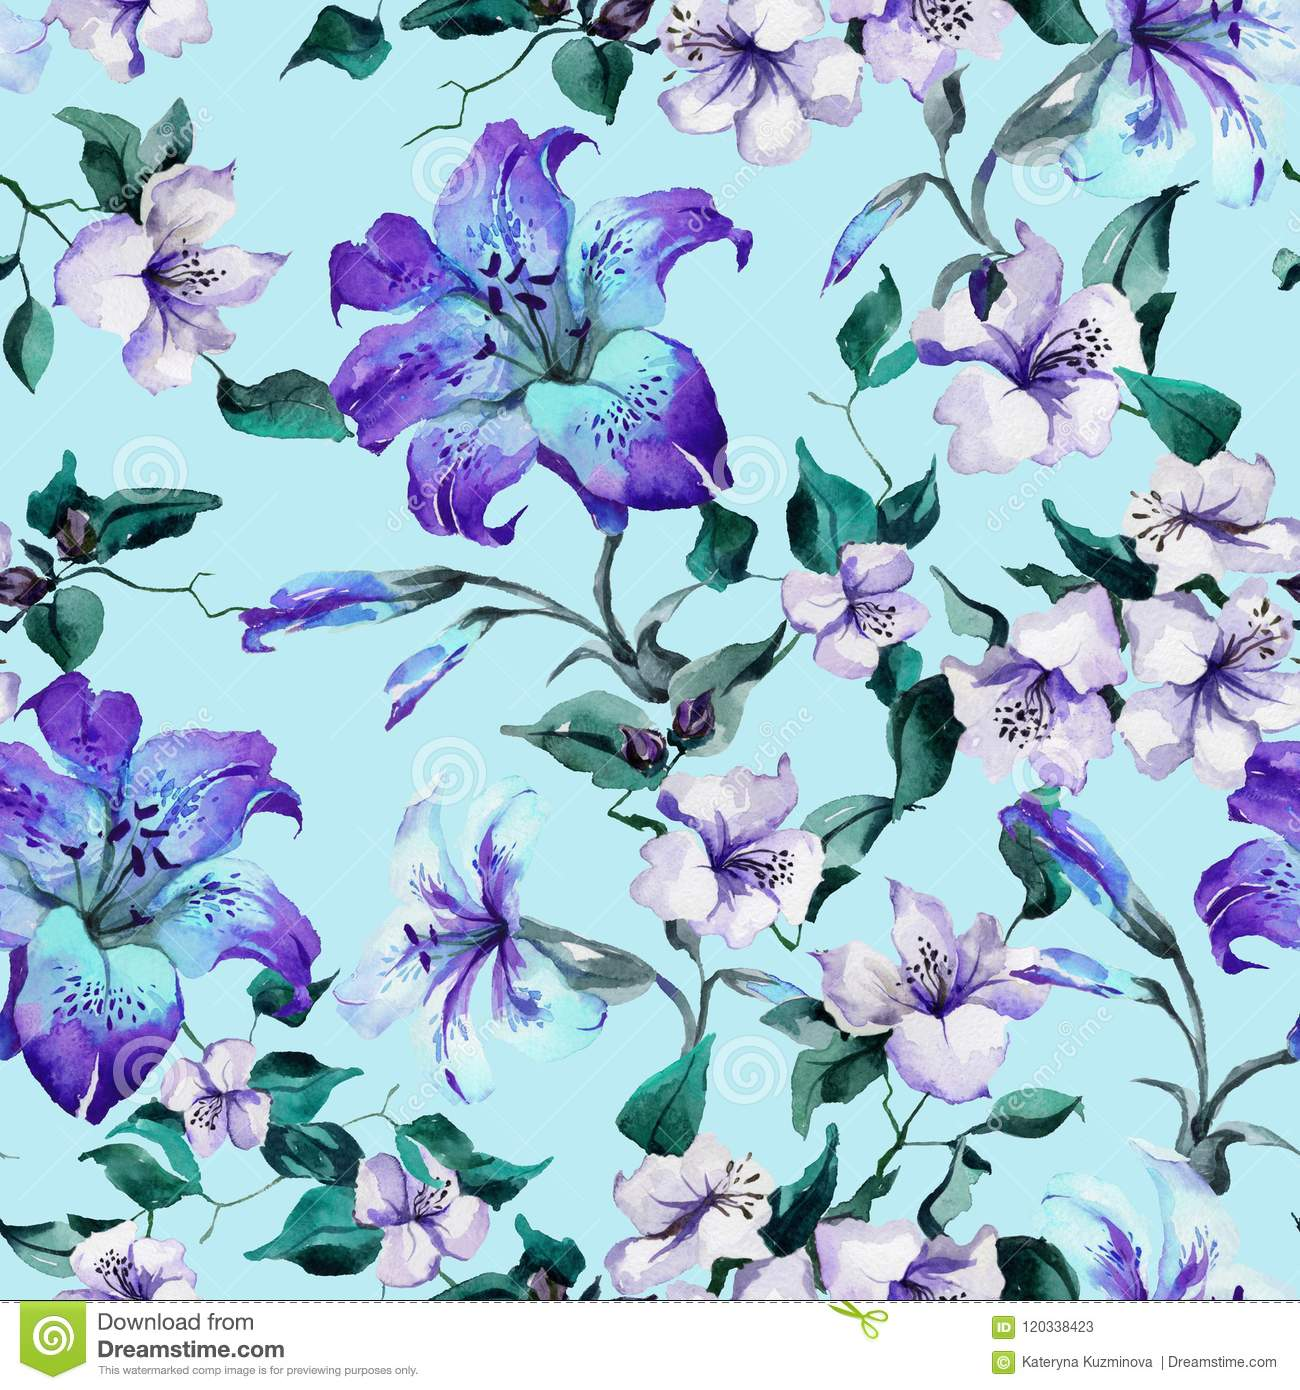 Beautiful Tiger Lilies On Twigs On Blue Background Seamless Floral